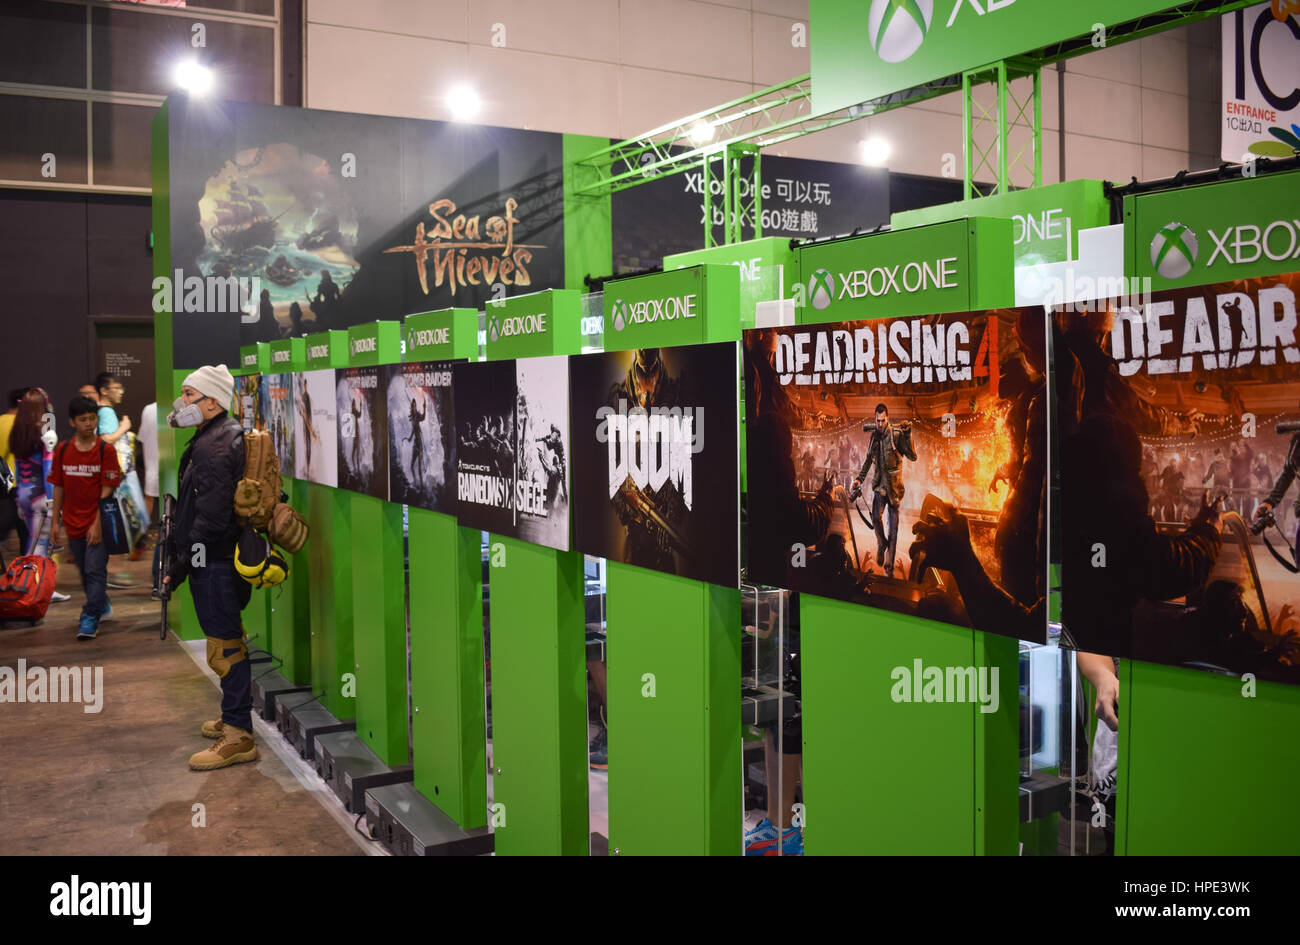 Video game stations, with an Xbox employee dressed in post-apocalyptic gear, at a game expo in Hong Kong - Stock Image